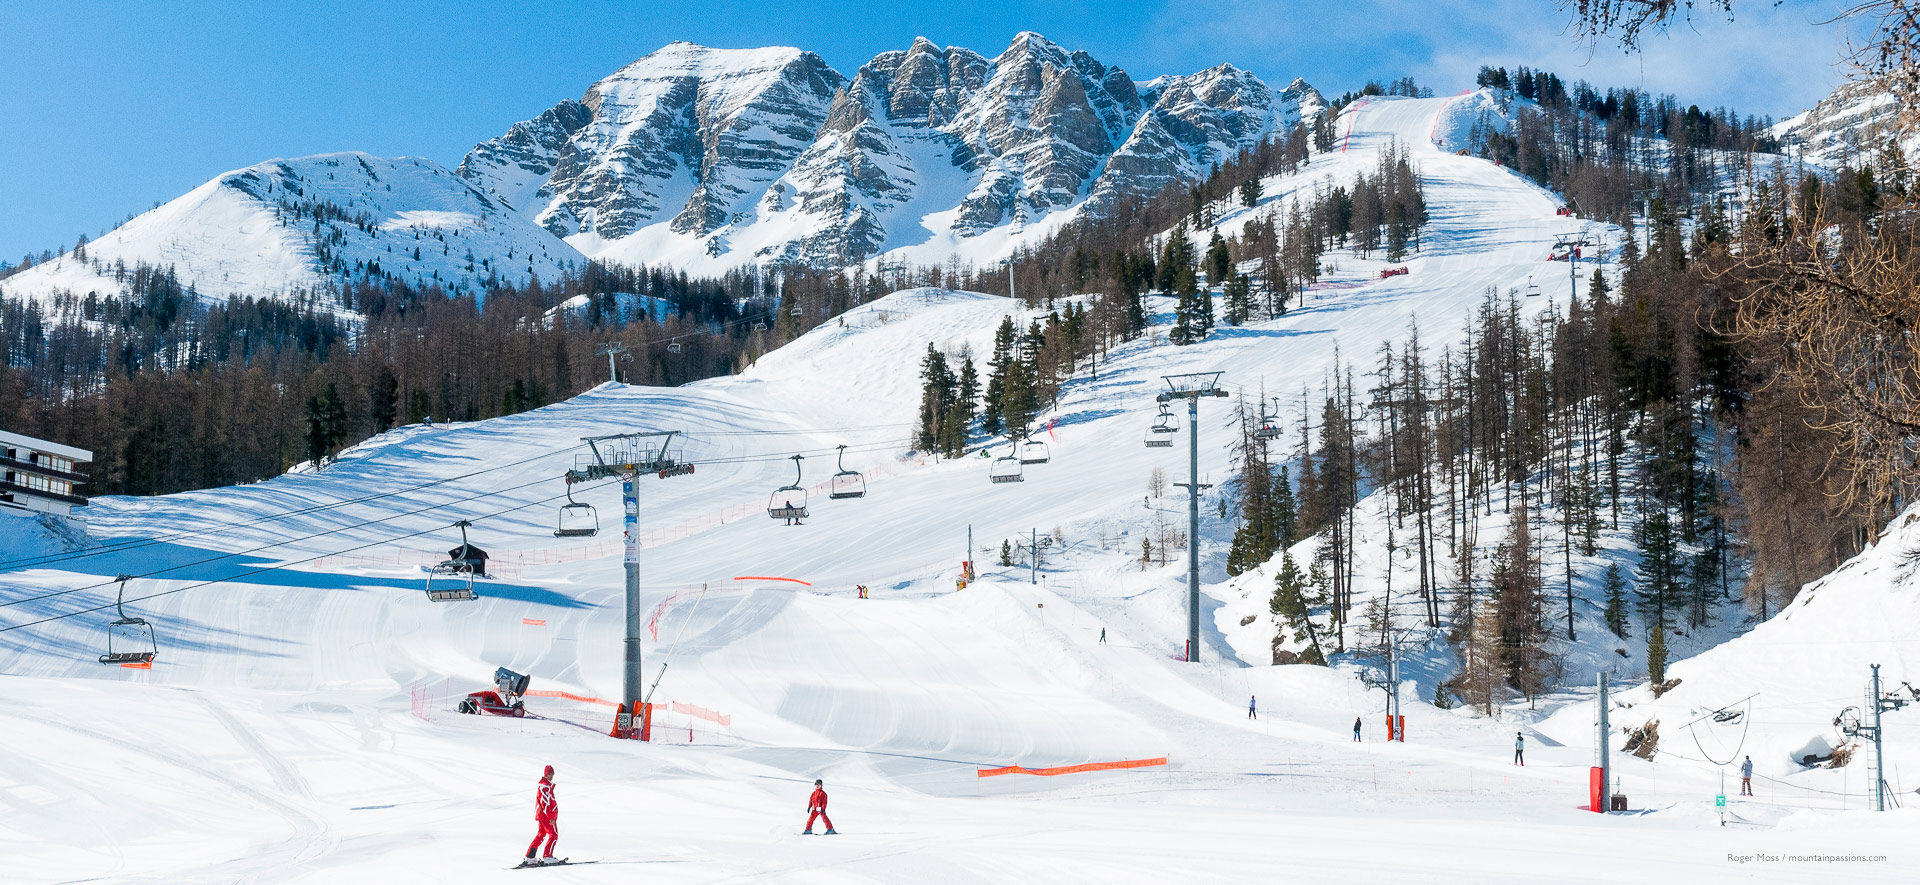 Early morning skiers on near-empty pistes, with trees and ski lifts